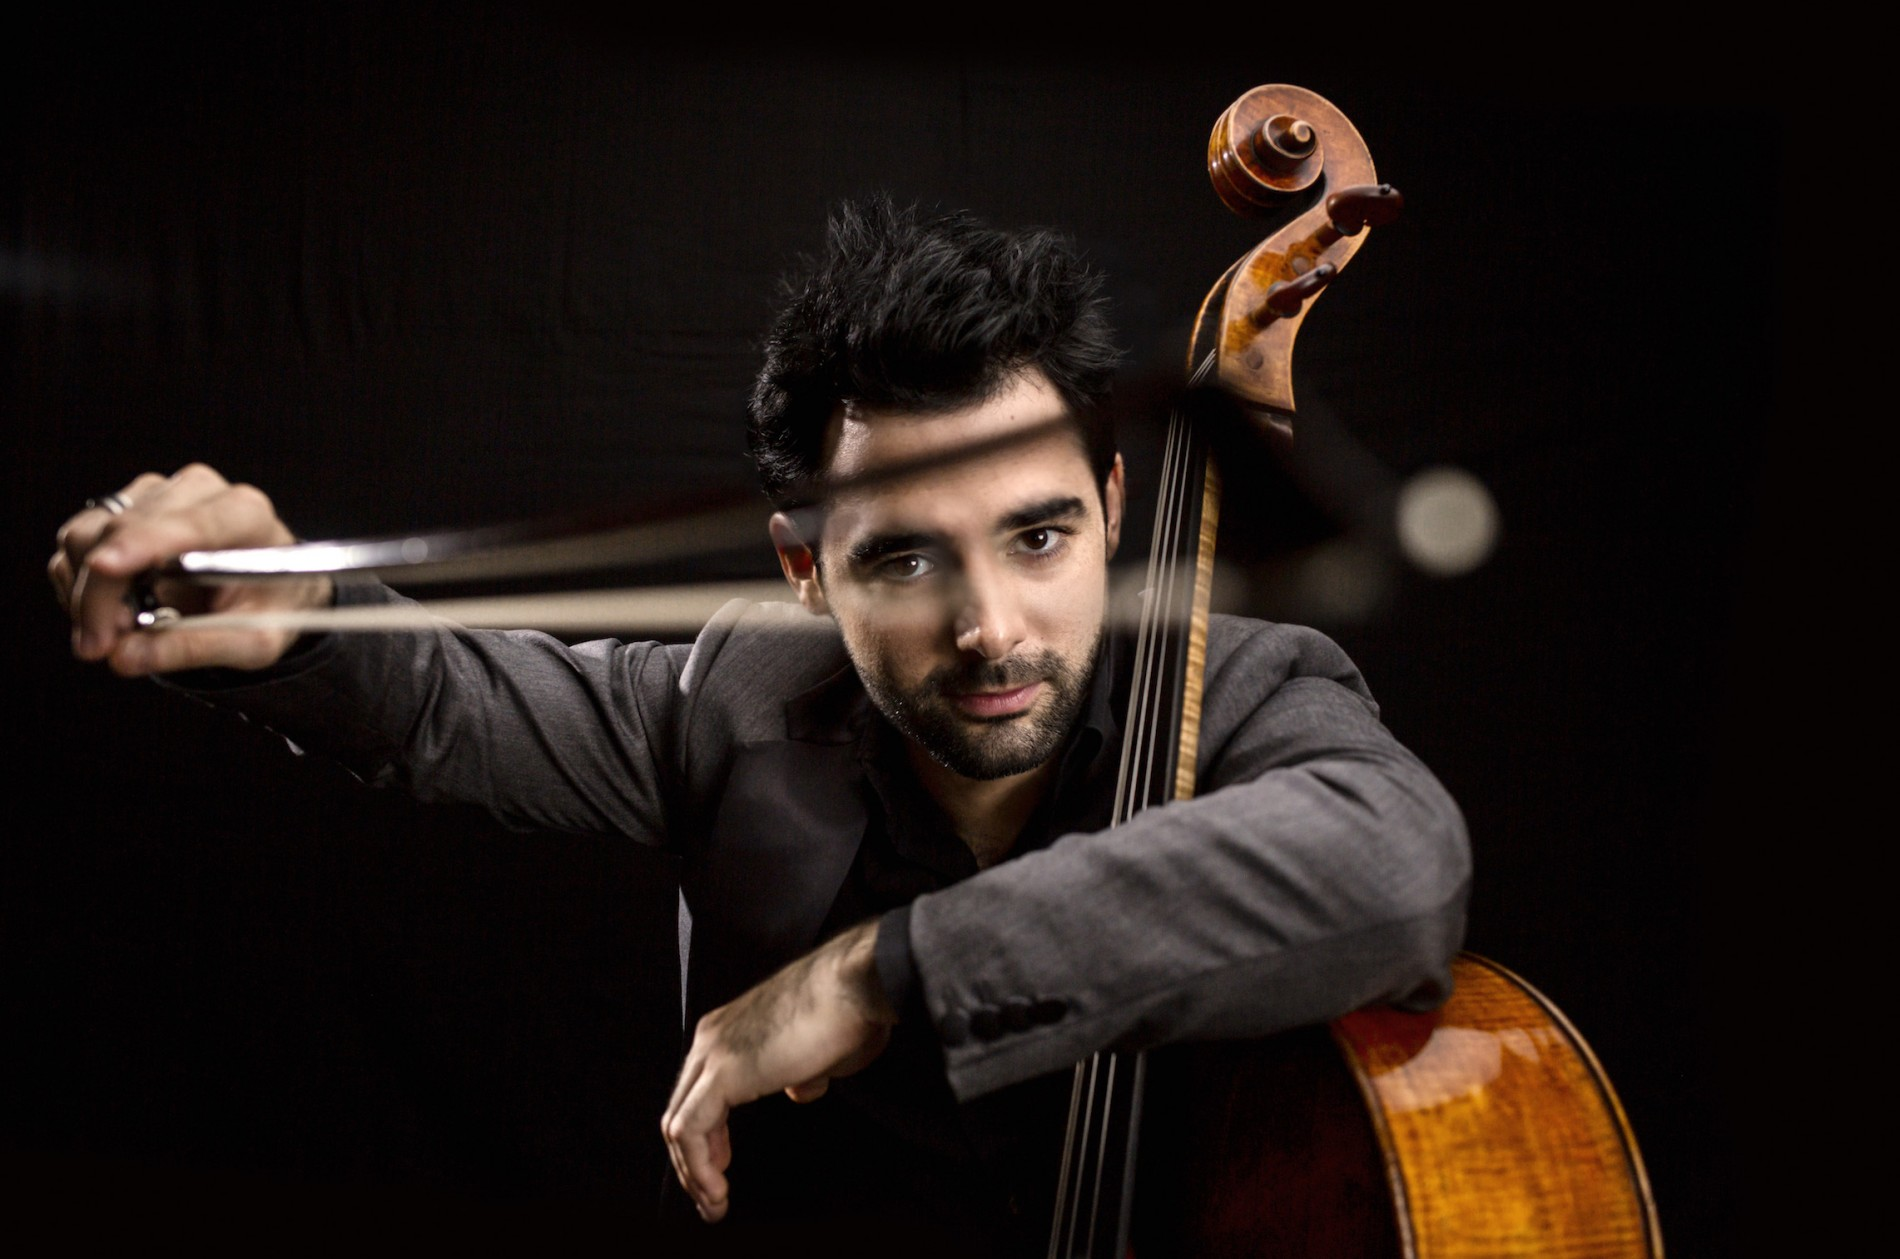 Pablo Ferrández, holding his cello in the crook of his arm and his bow out in front of his face